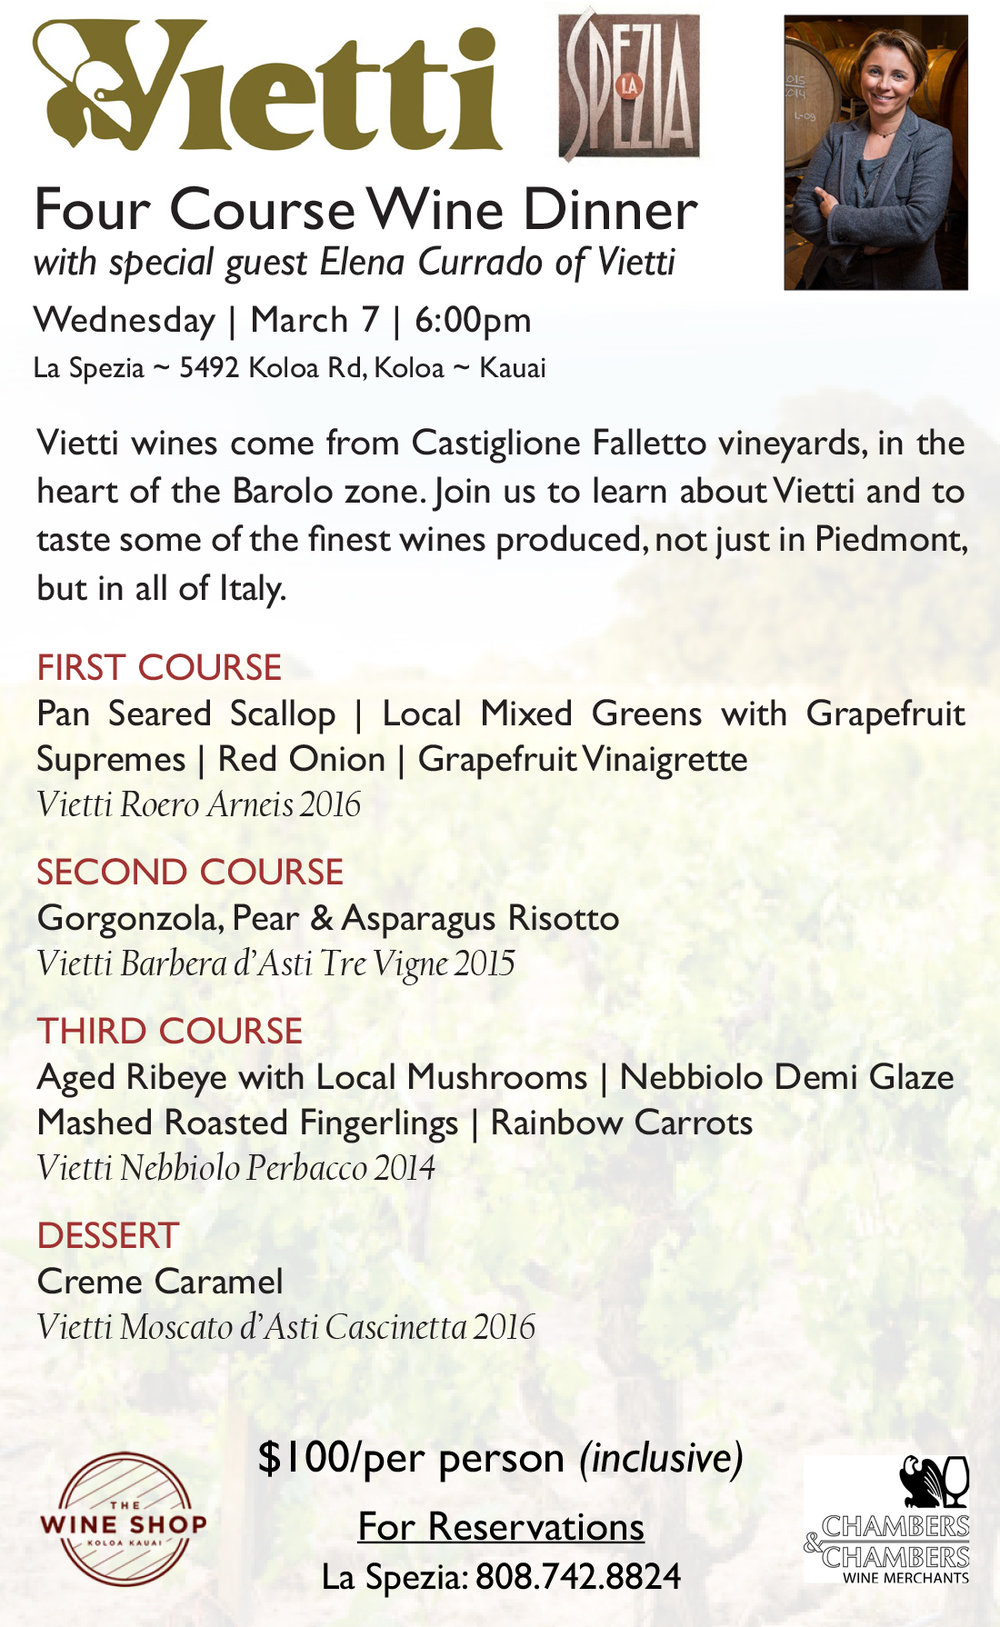 Vietti Wine Dinner Flyer_La Spezia_March 2018.jpg